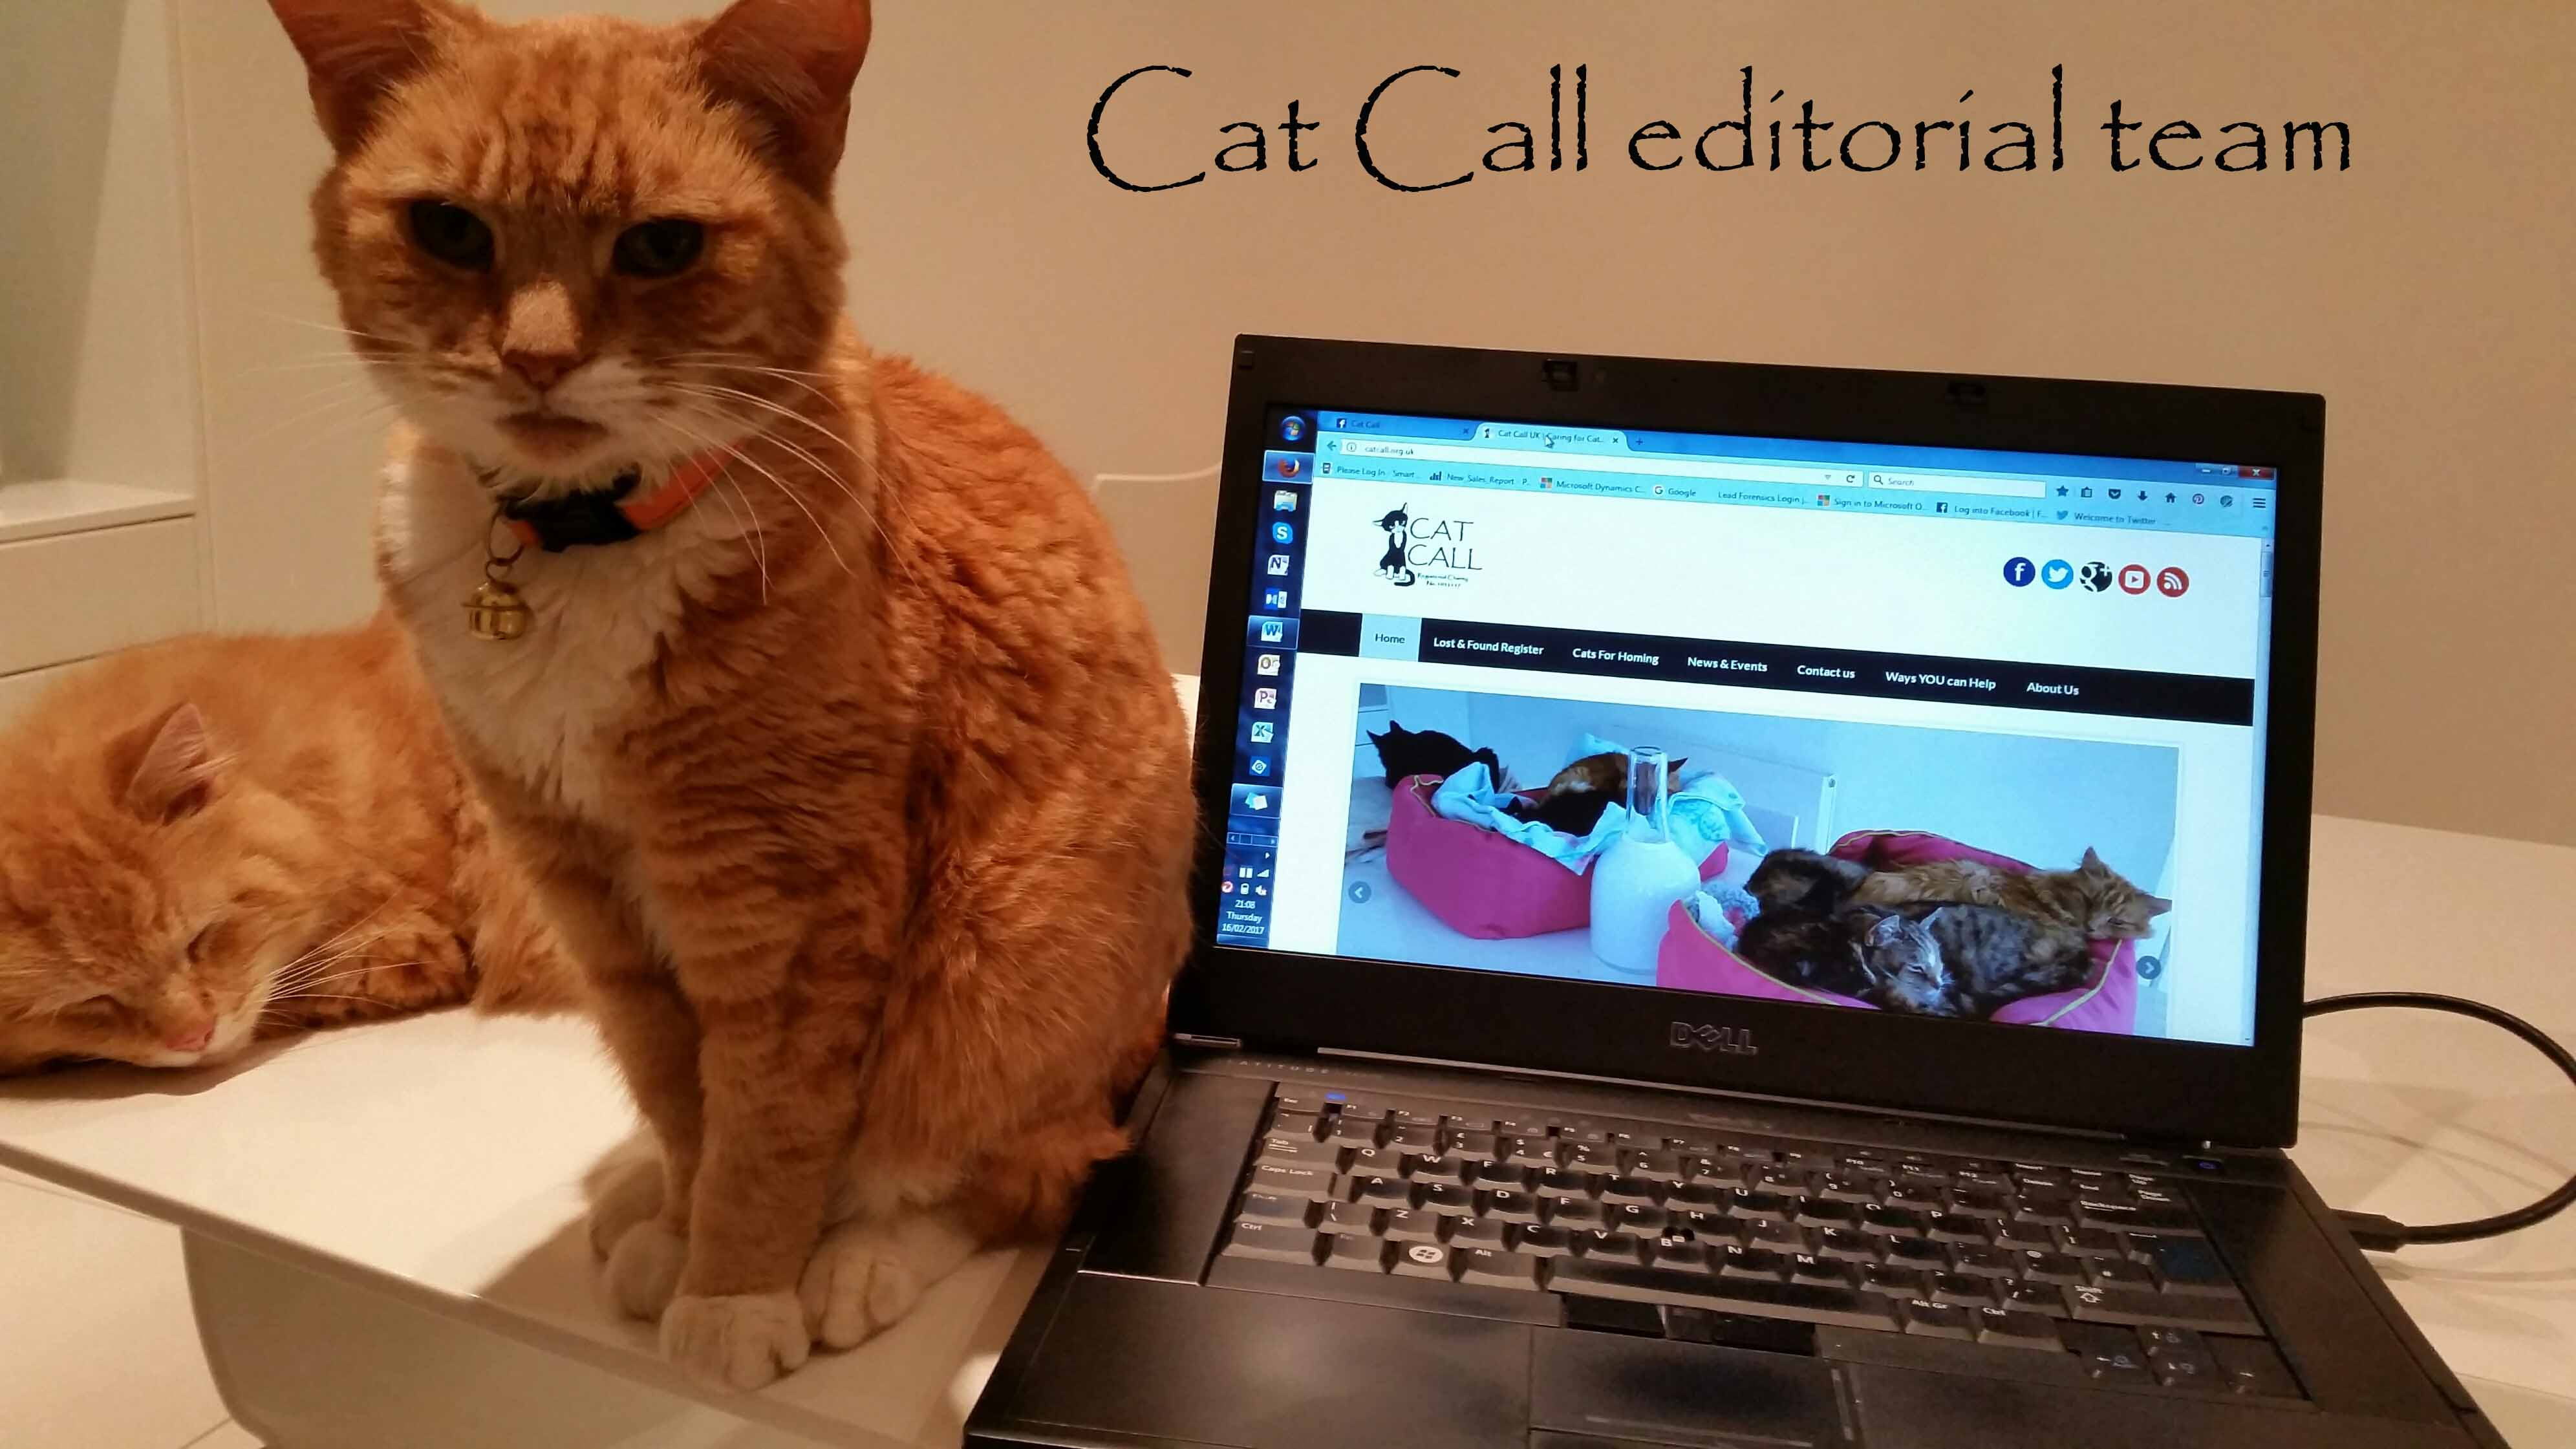 Cat Call charity editorial team